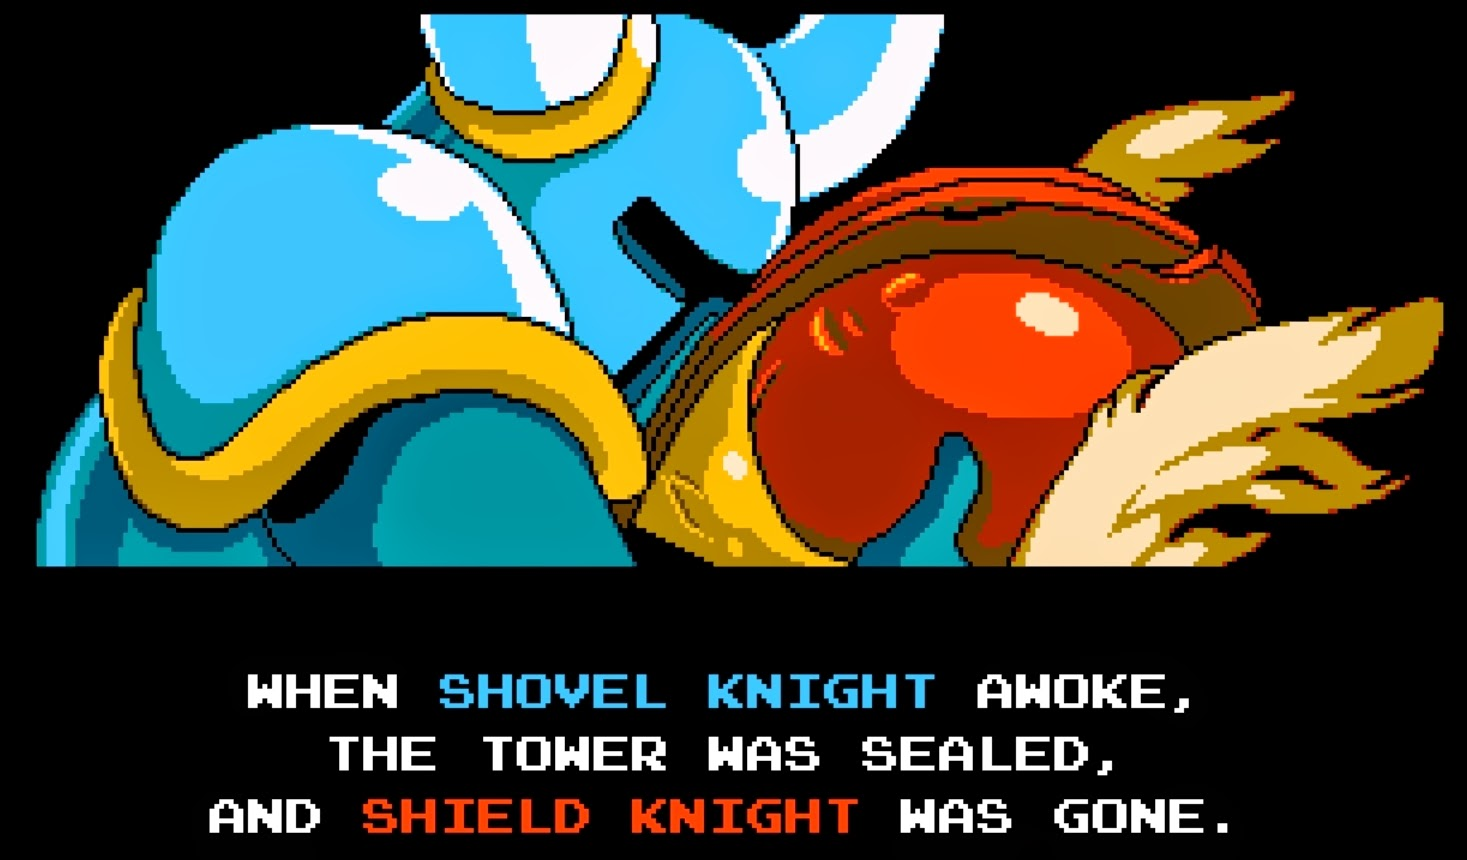 Will you and Shovel Knight be able to rescue Shield Knight?